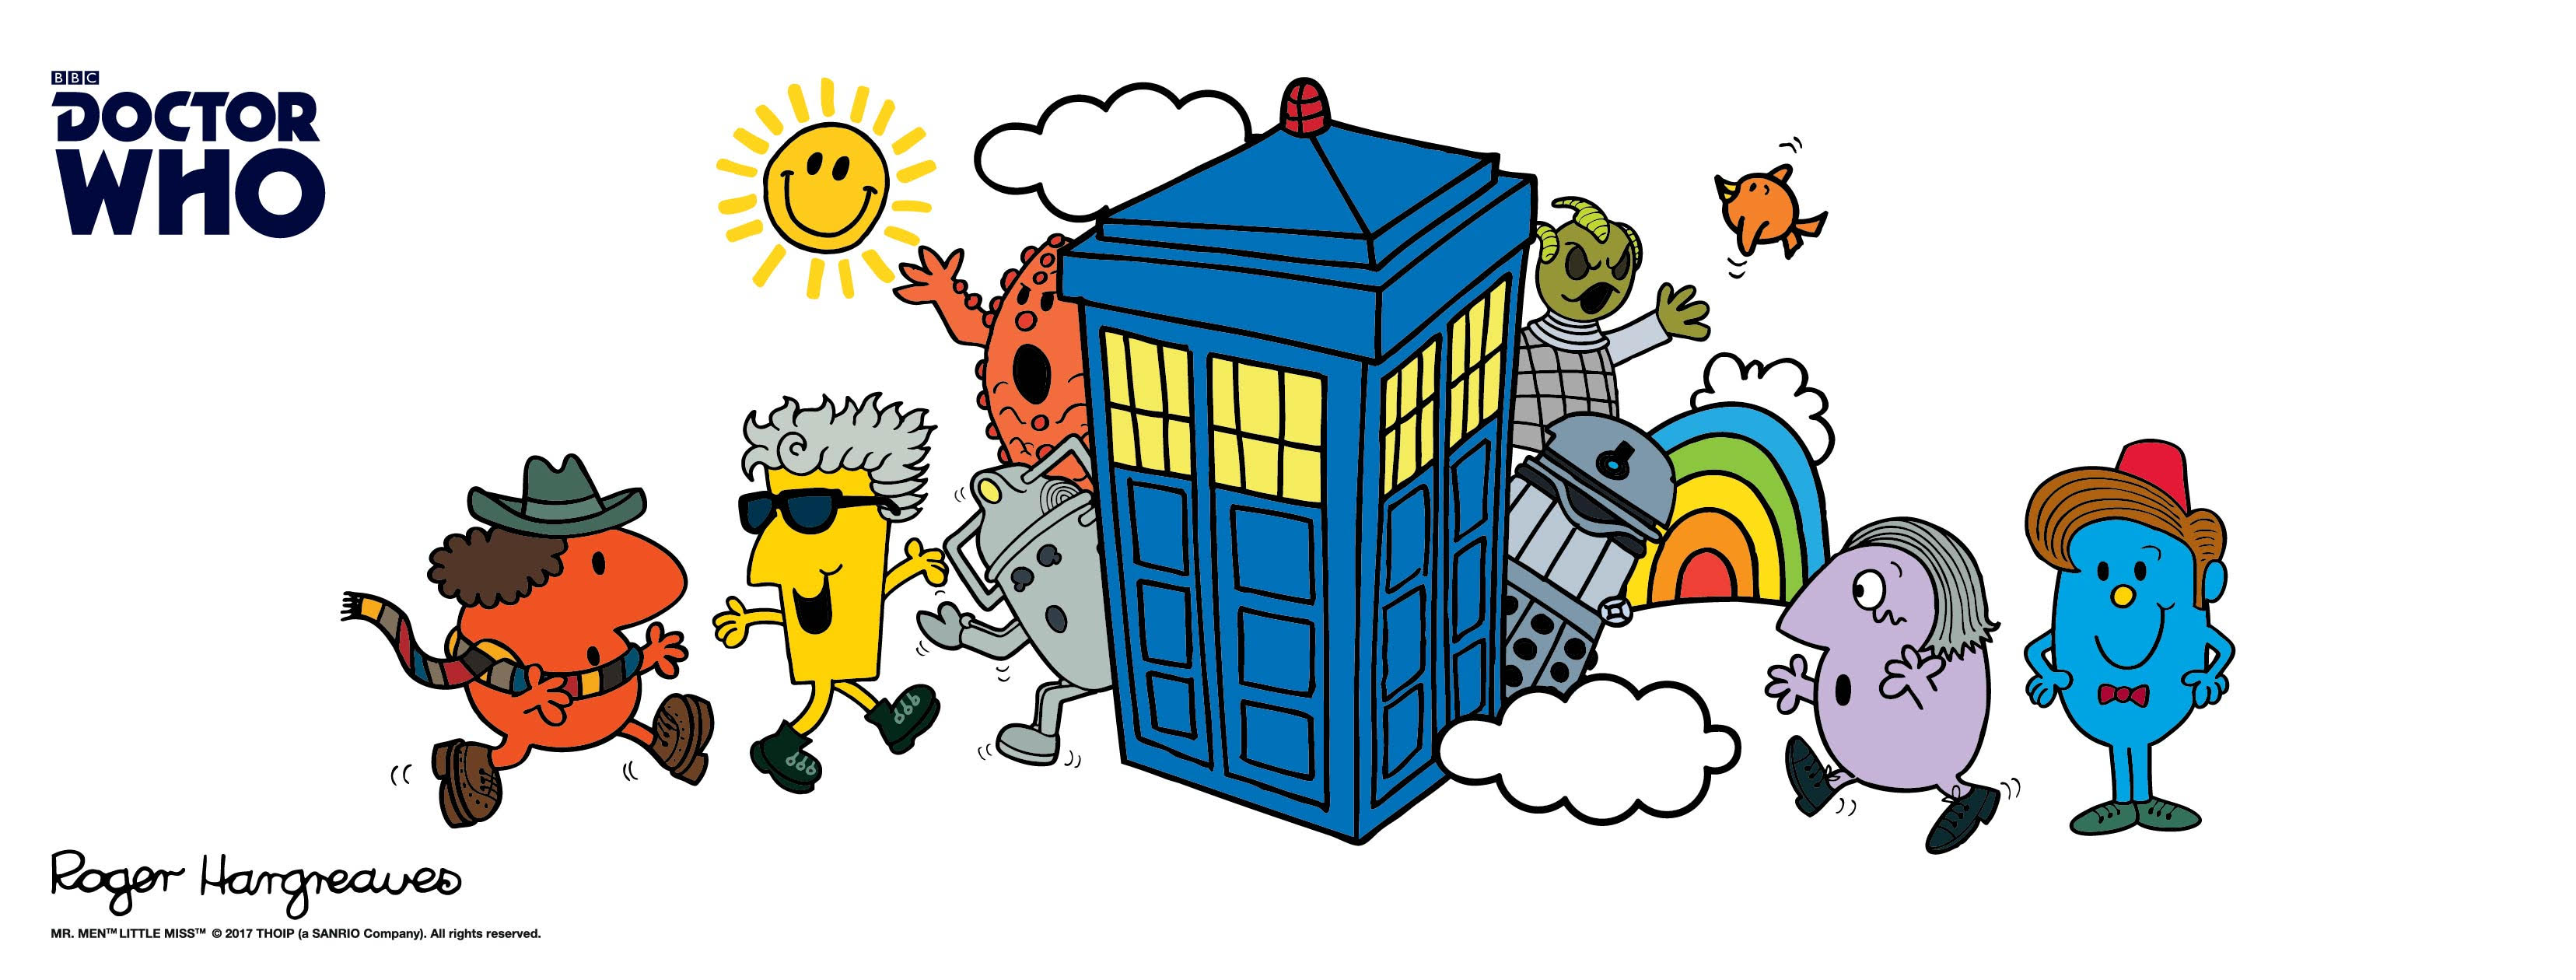 Mr. Men and Little Miss books featuring our favorite Doctor by Roger Hargreaves